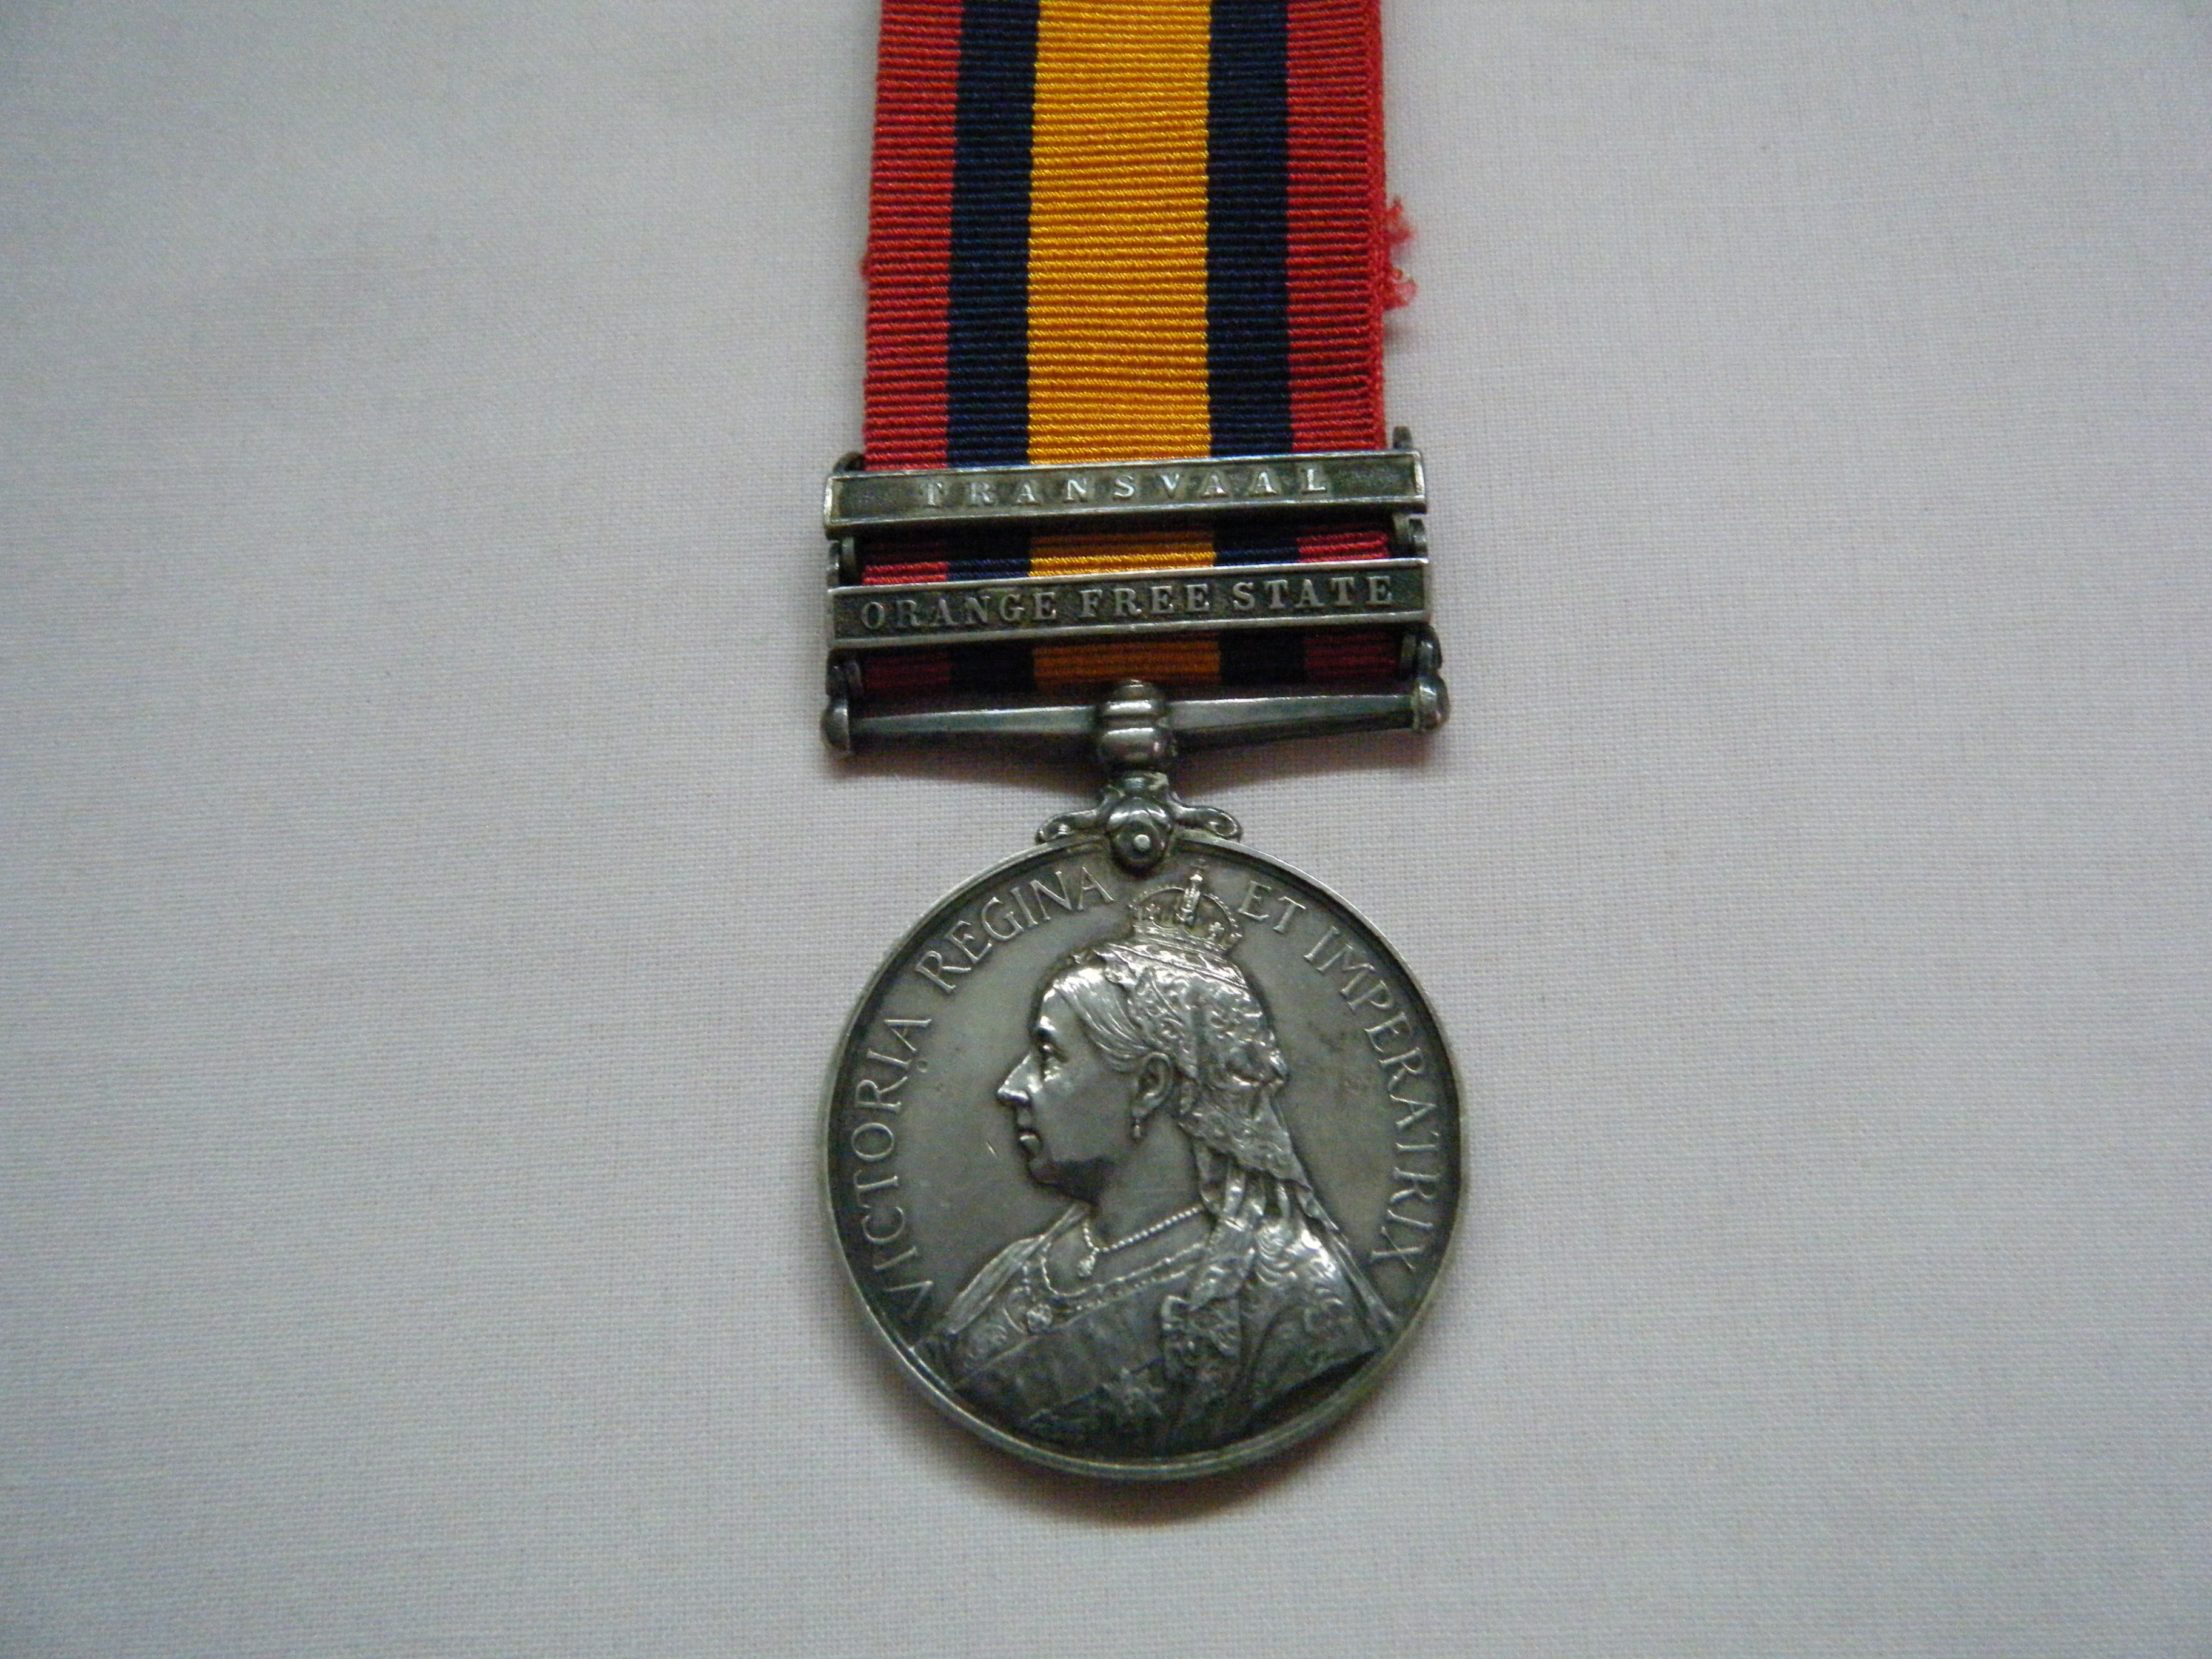 ONE.  2275 Pte. J. Garratt, King's Royal Rifle Corps (served with the 3rd Bn.).